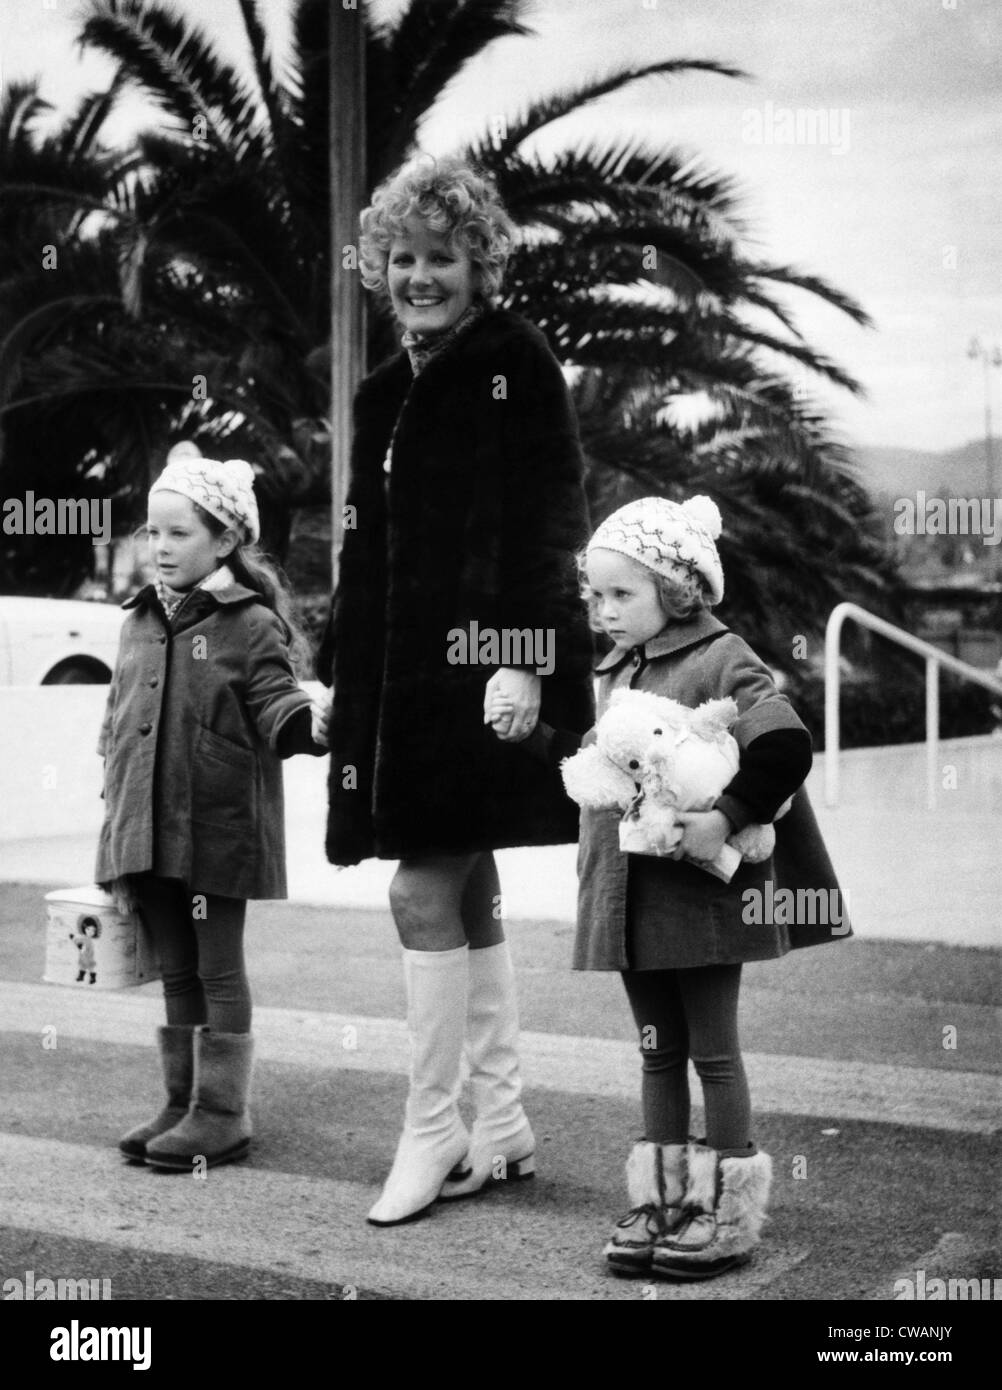 Petula Clark with her children at the French Riviera, 1968. Courtesy: CSU Archives/Everett Collection - Stock Image